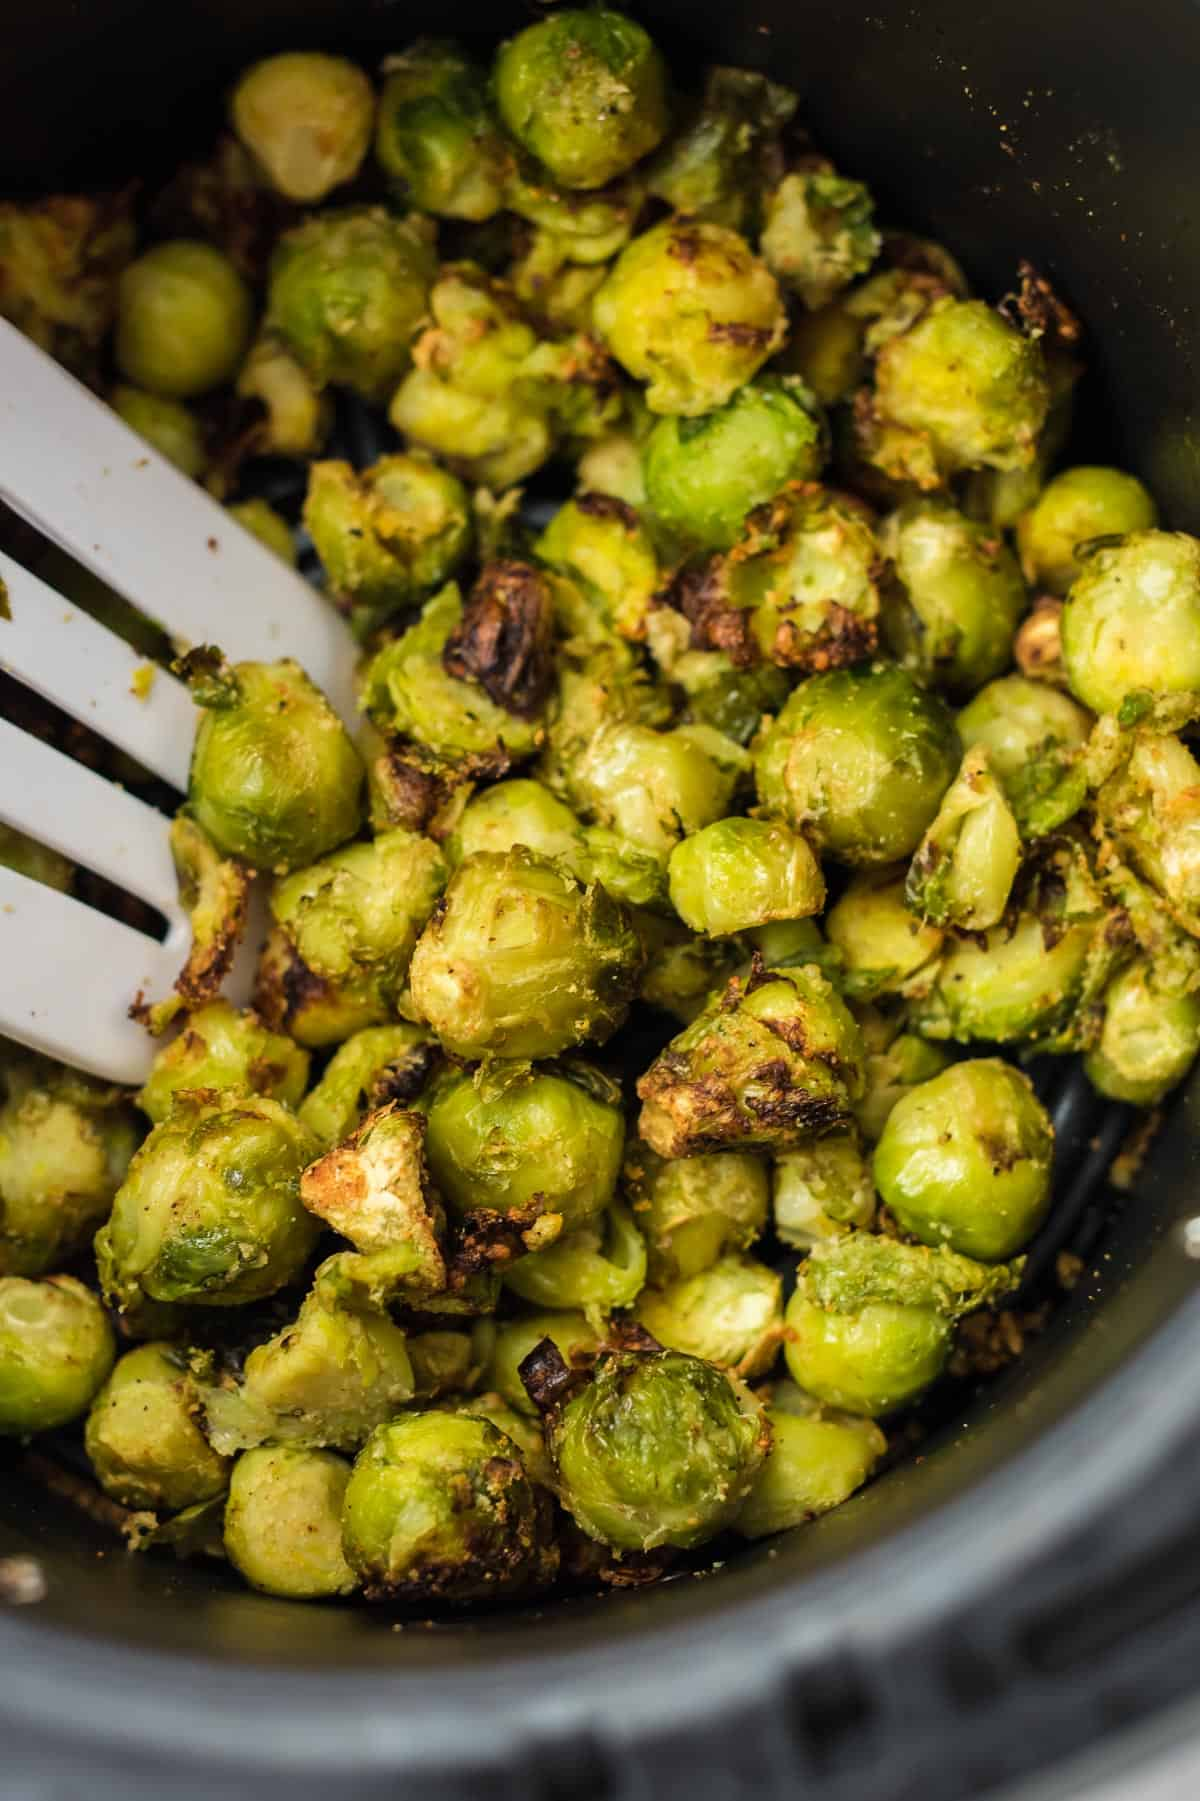 spatula taking a scoop of brussel sprouts from the air fryer